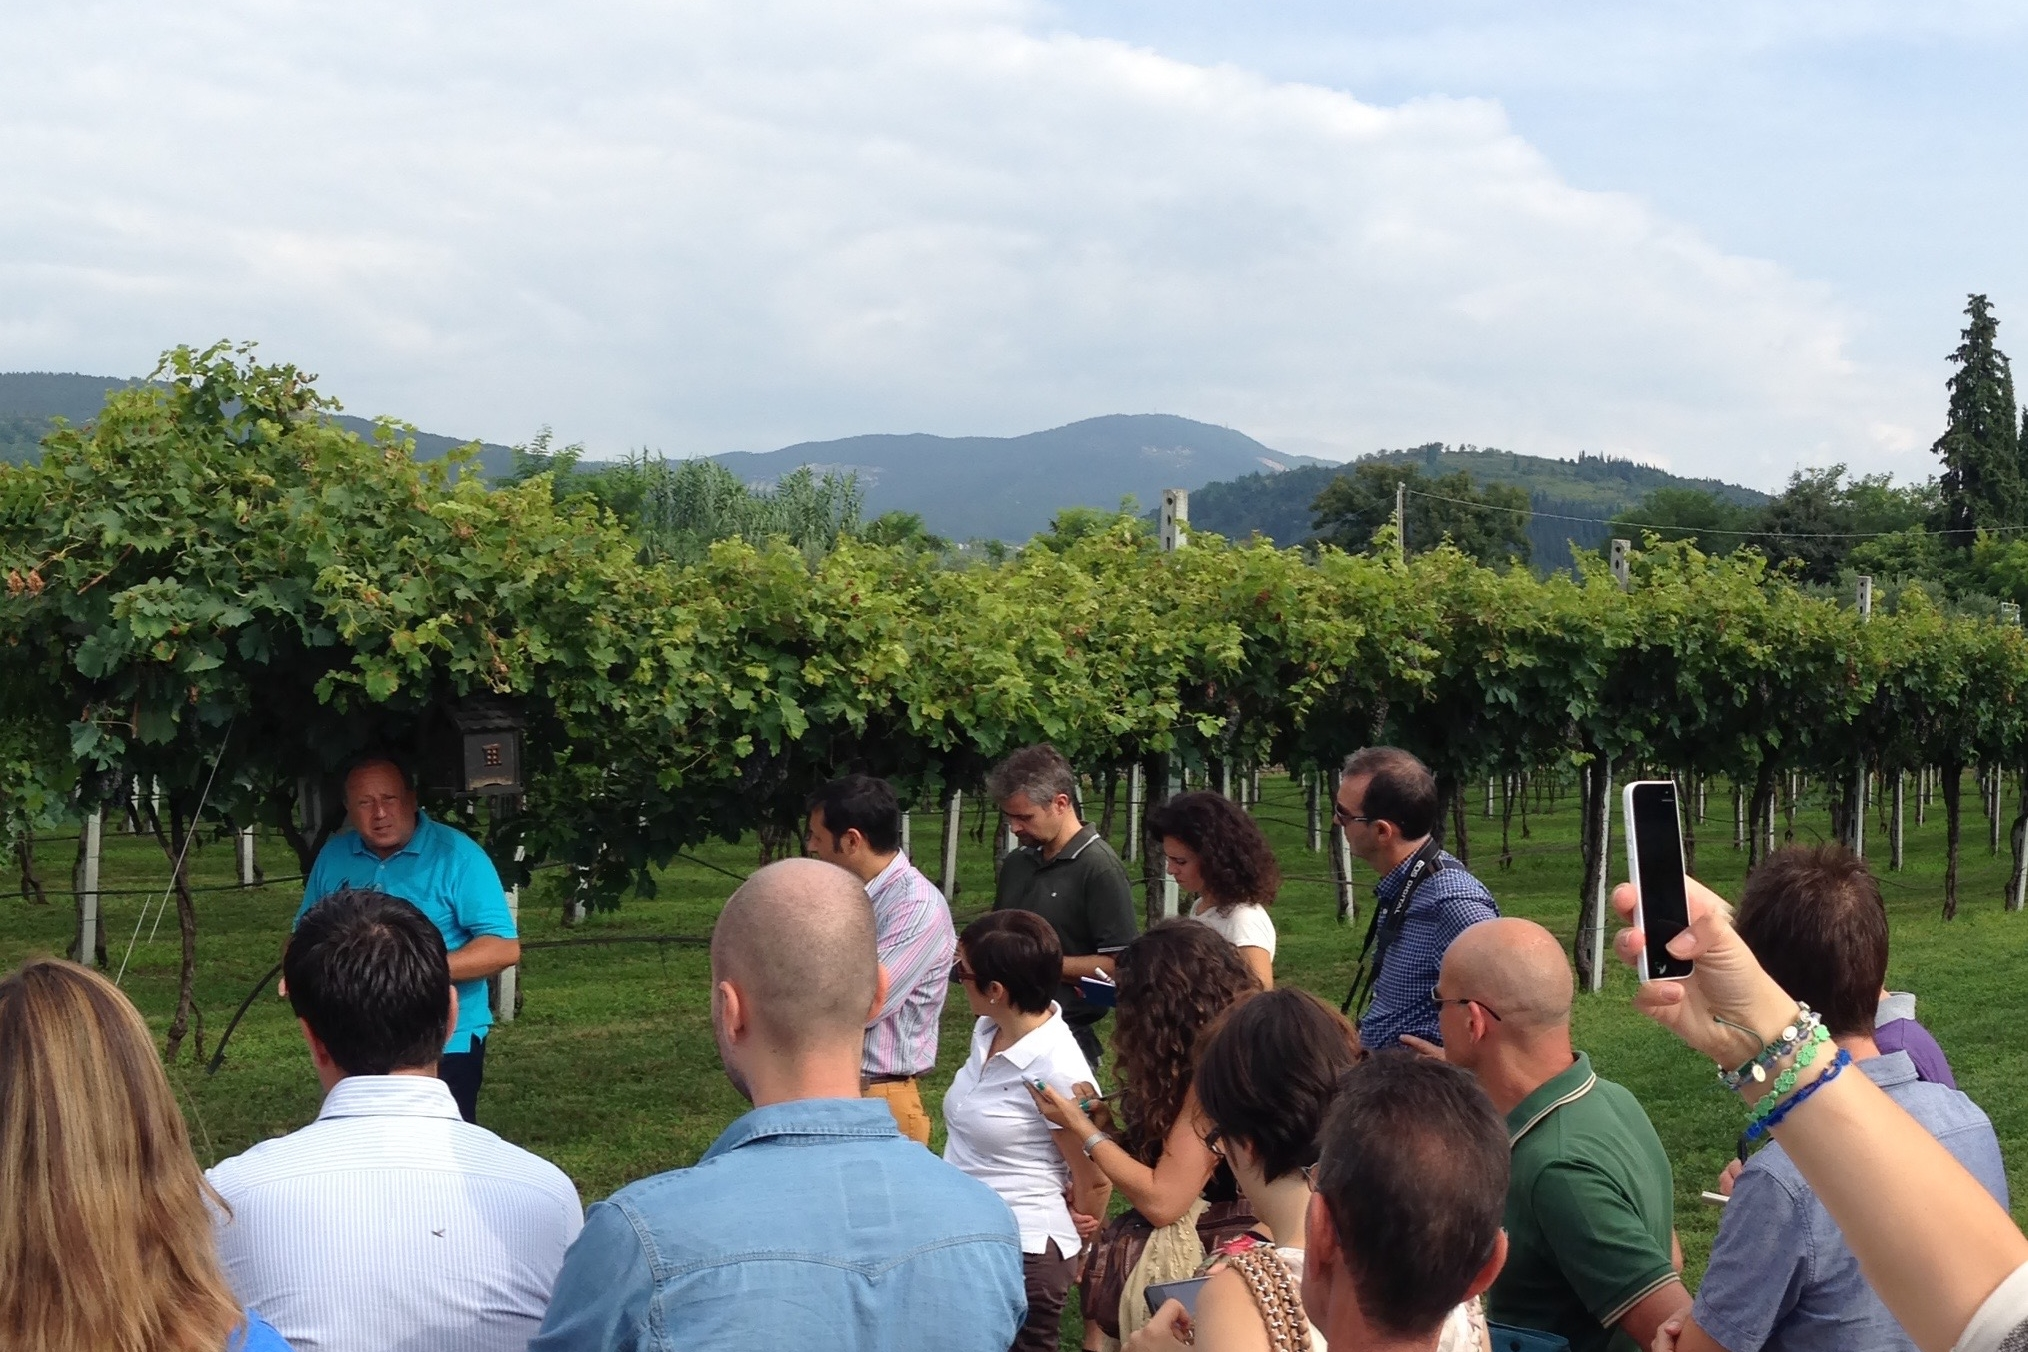 - We help travel agencies & wine tour operators interested to develop tours and visits to Valpolicella wineries, sites and other activities.